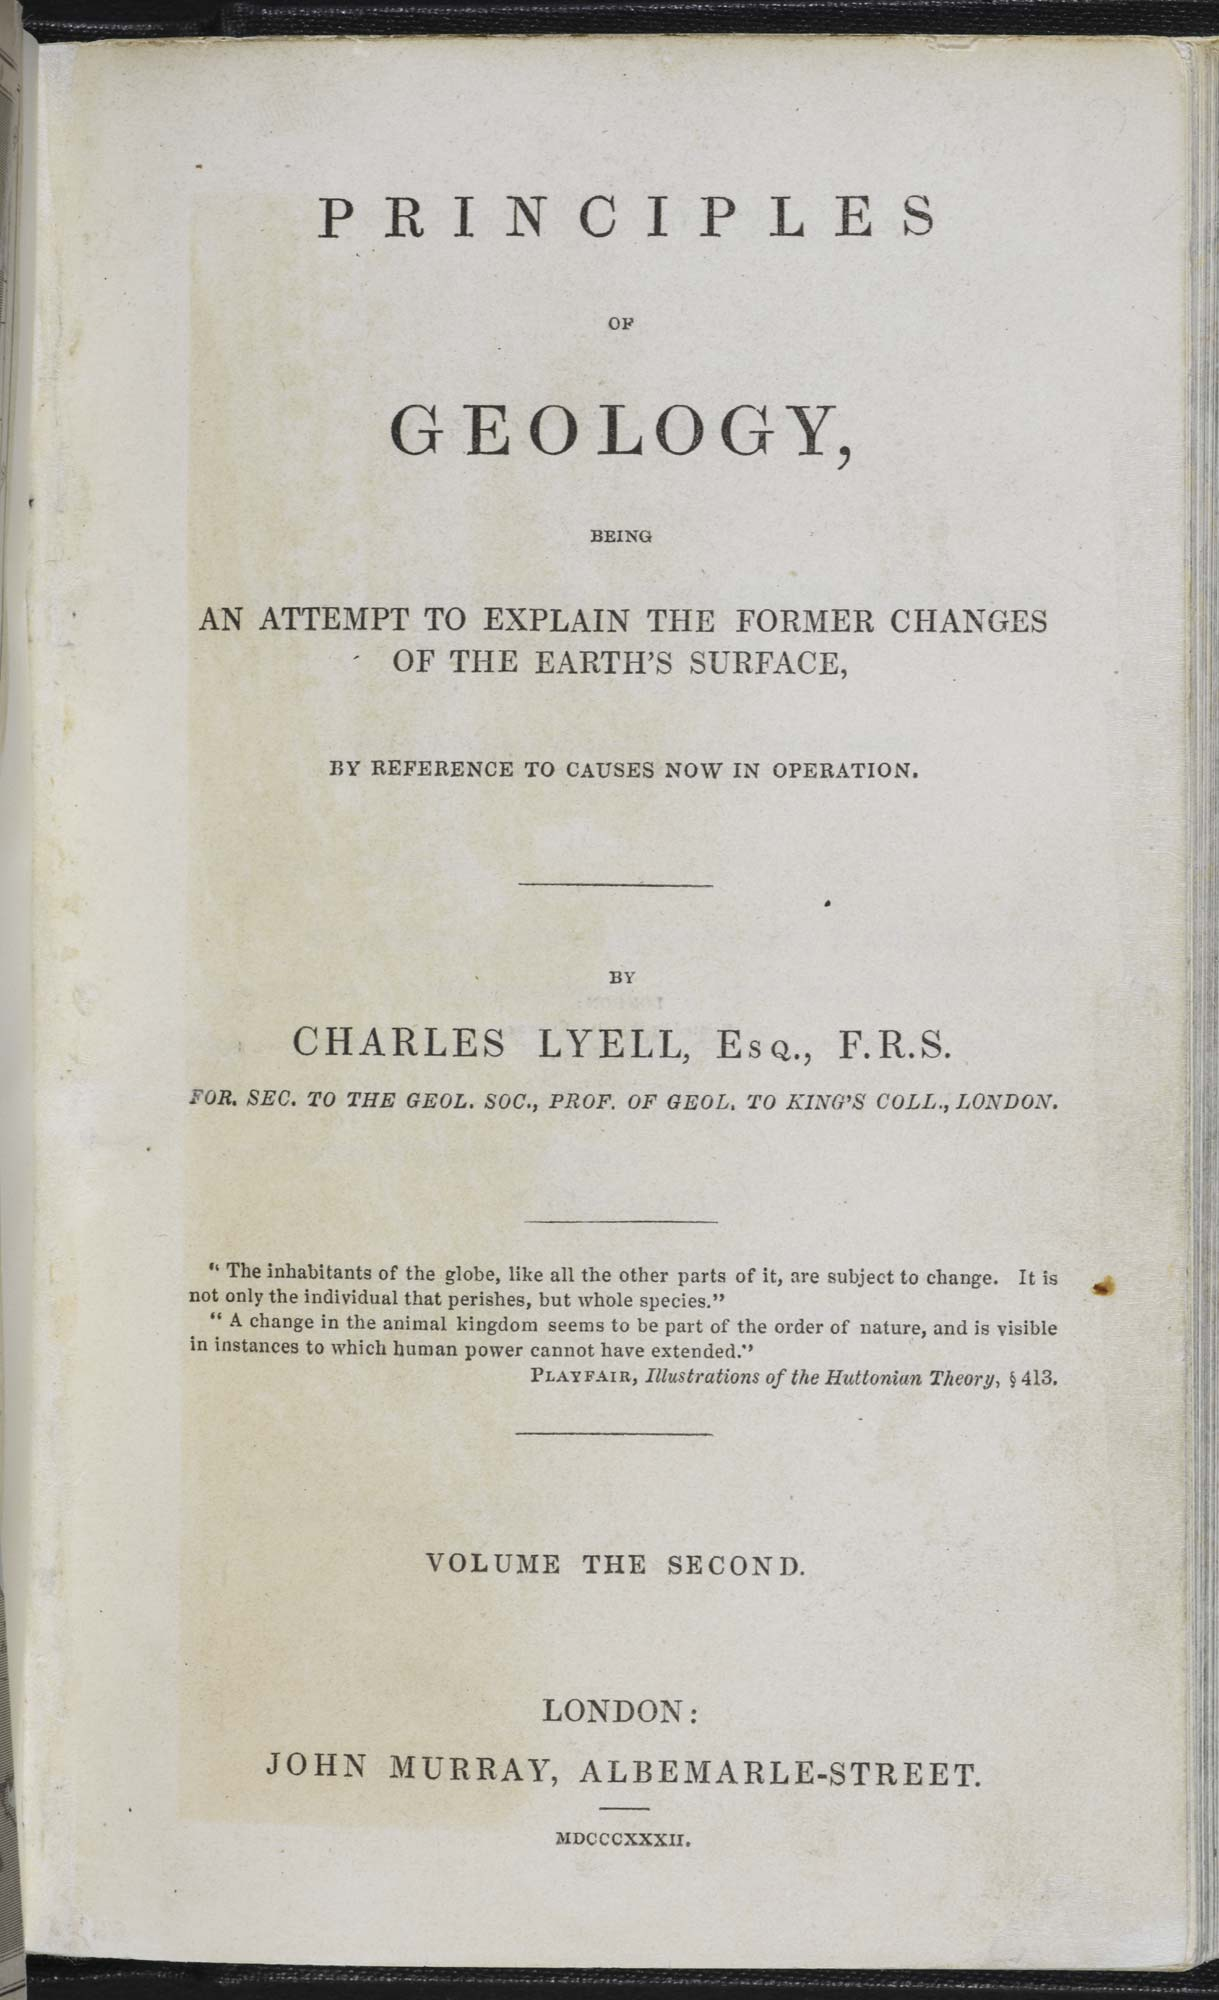 Charles Lyell's Principles of Geology, f.1